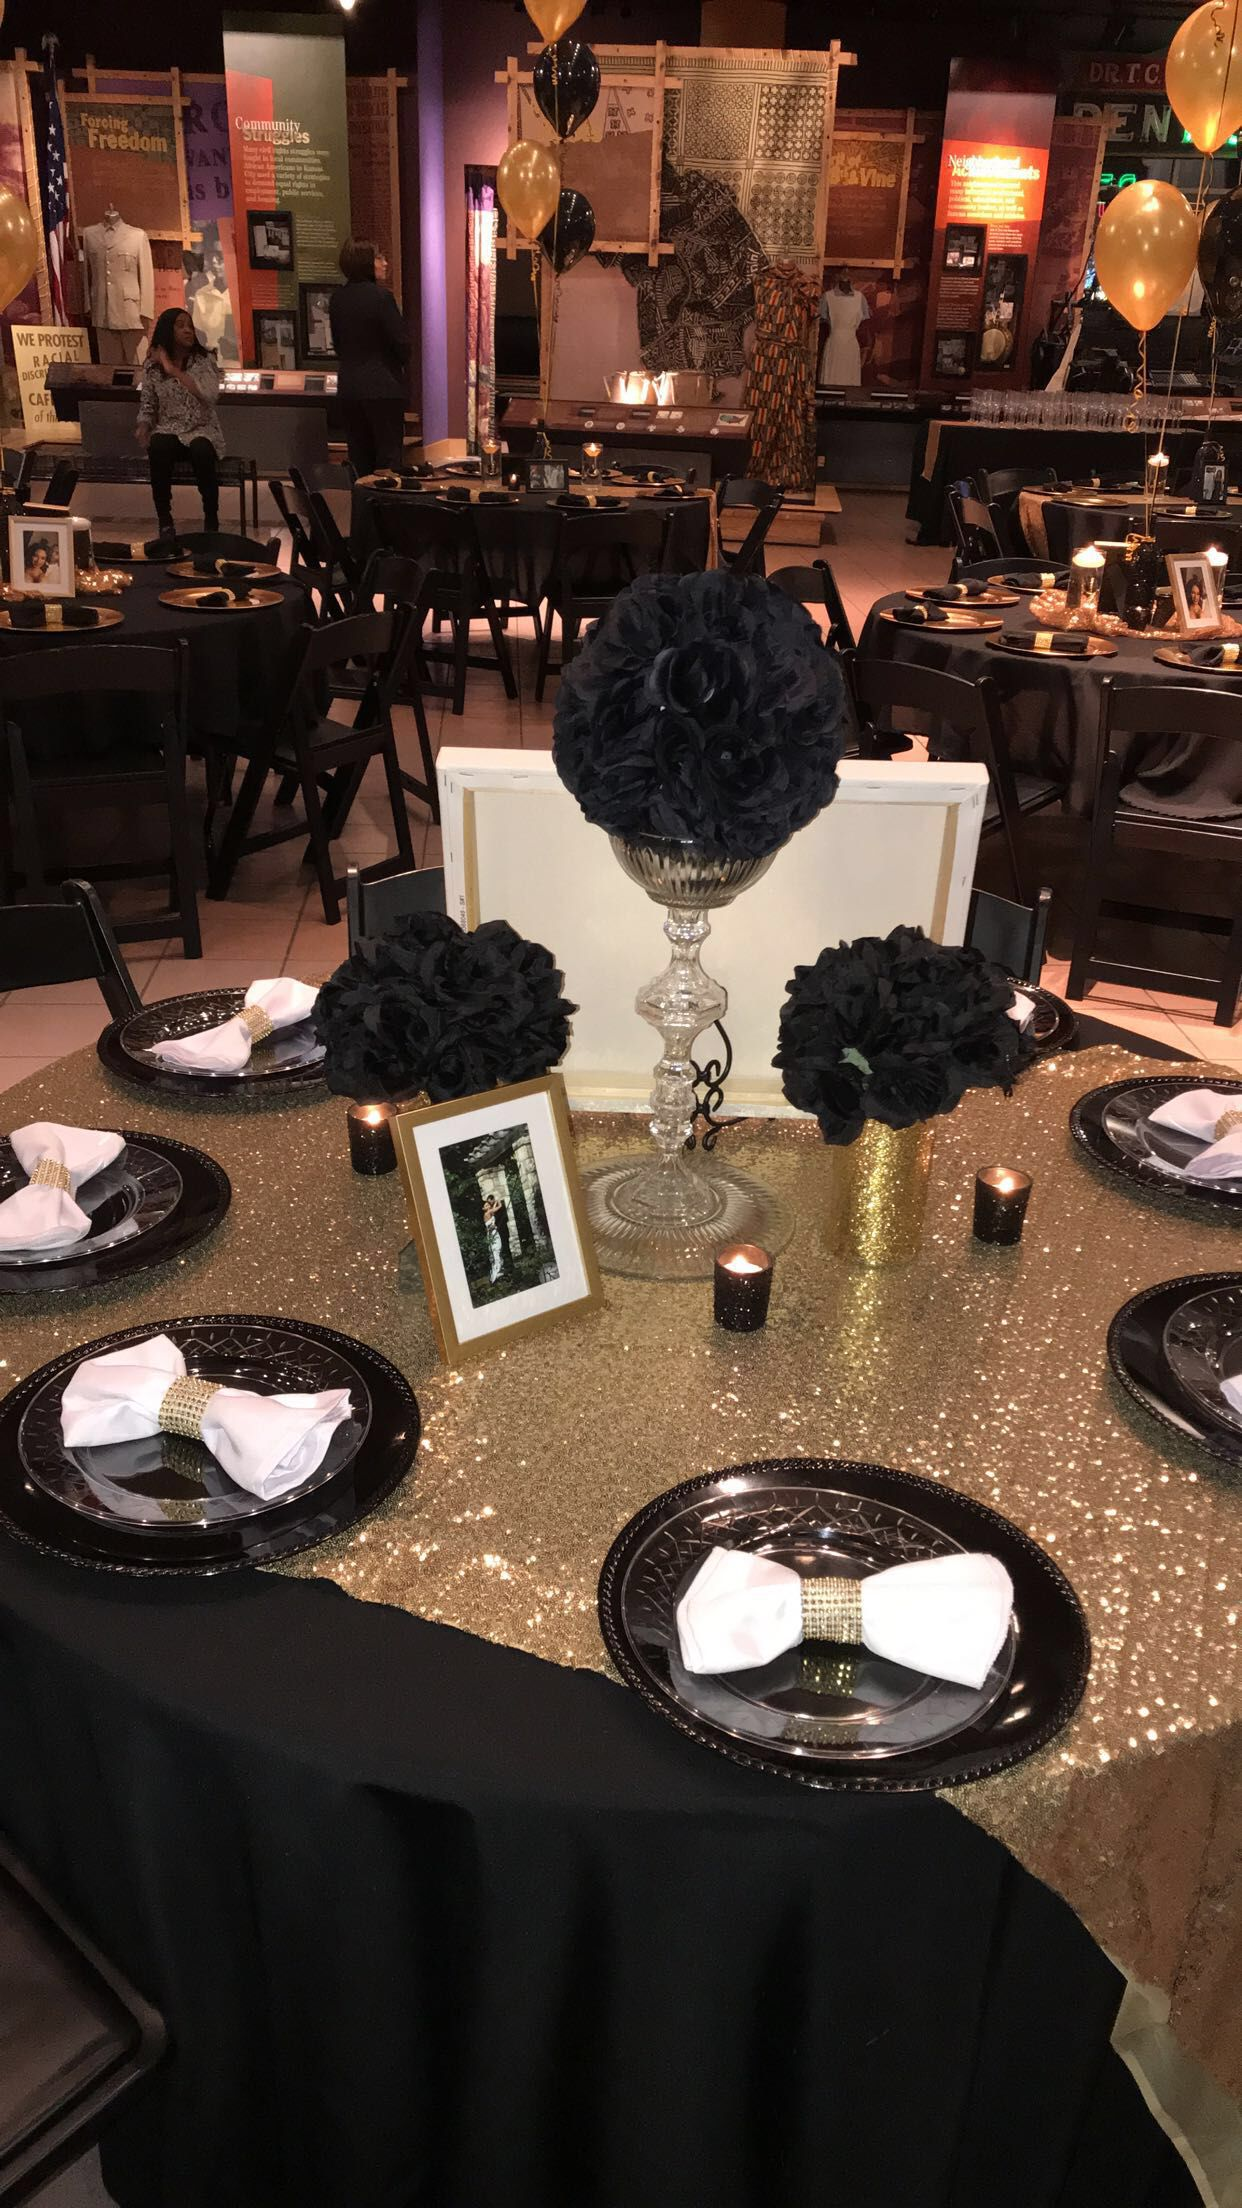 Black And Gold Table Decor Birthday Party Table Decorations